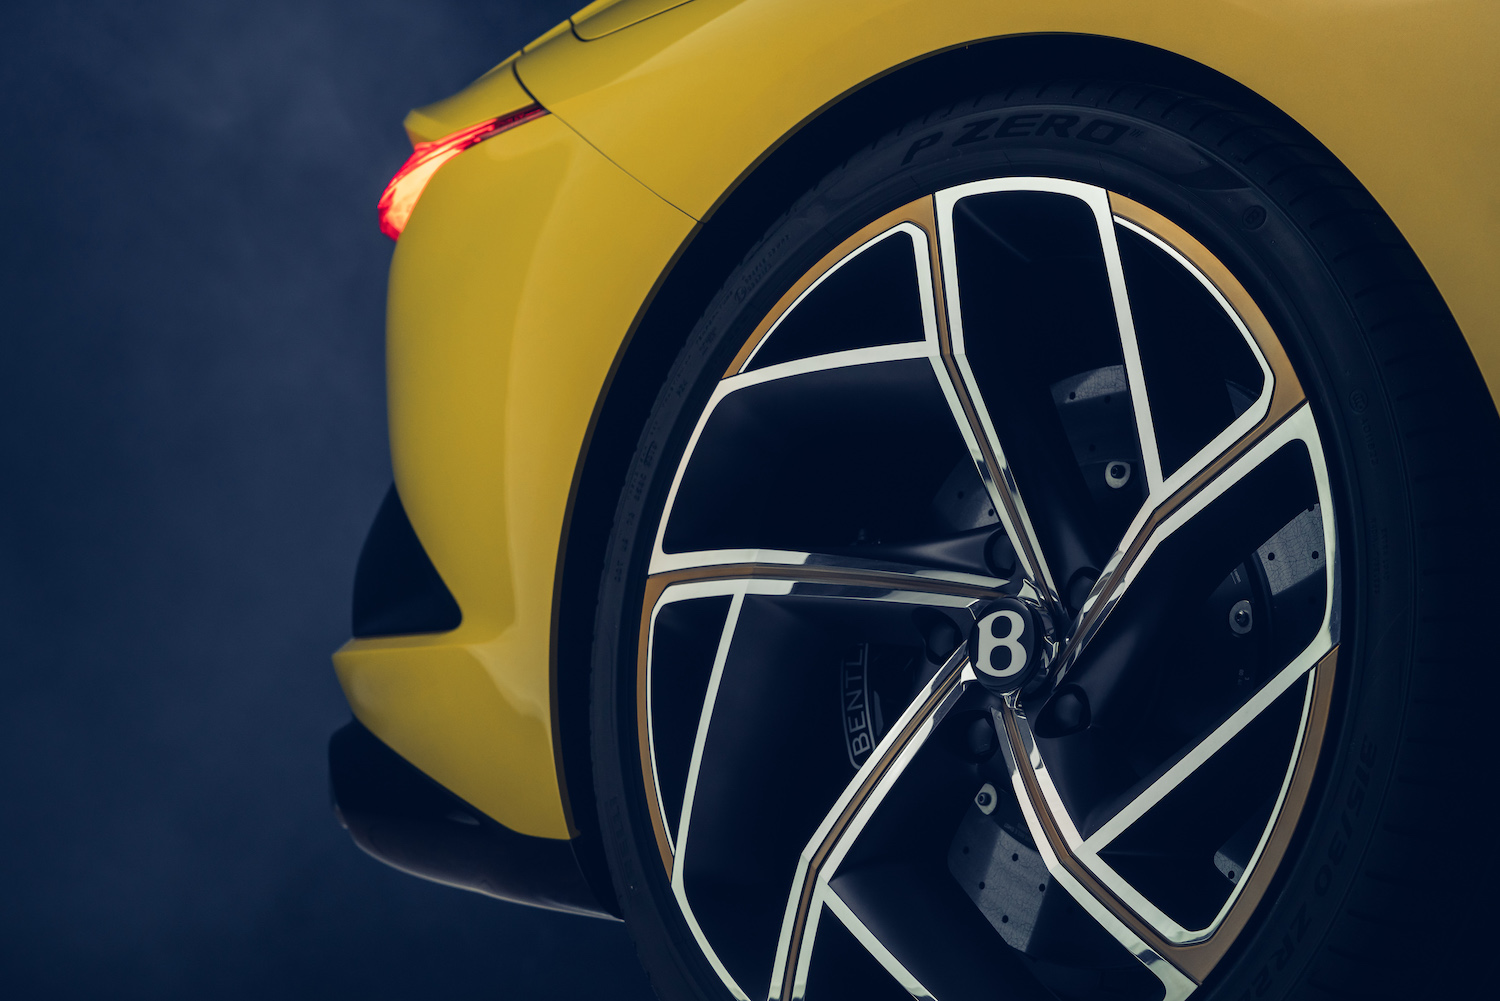 2020 mulliner bacalar barchetta wheel closeup